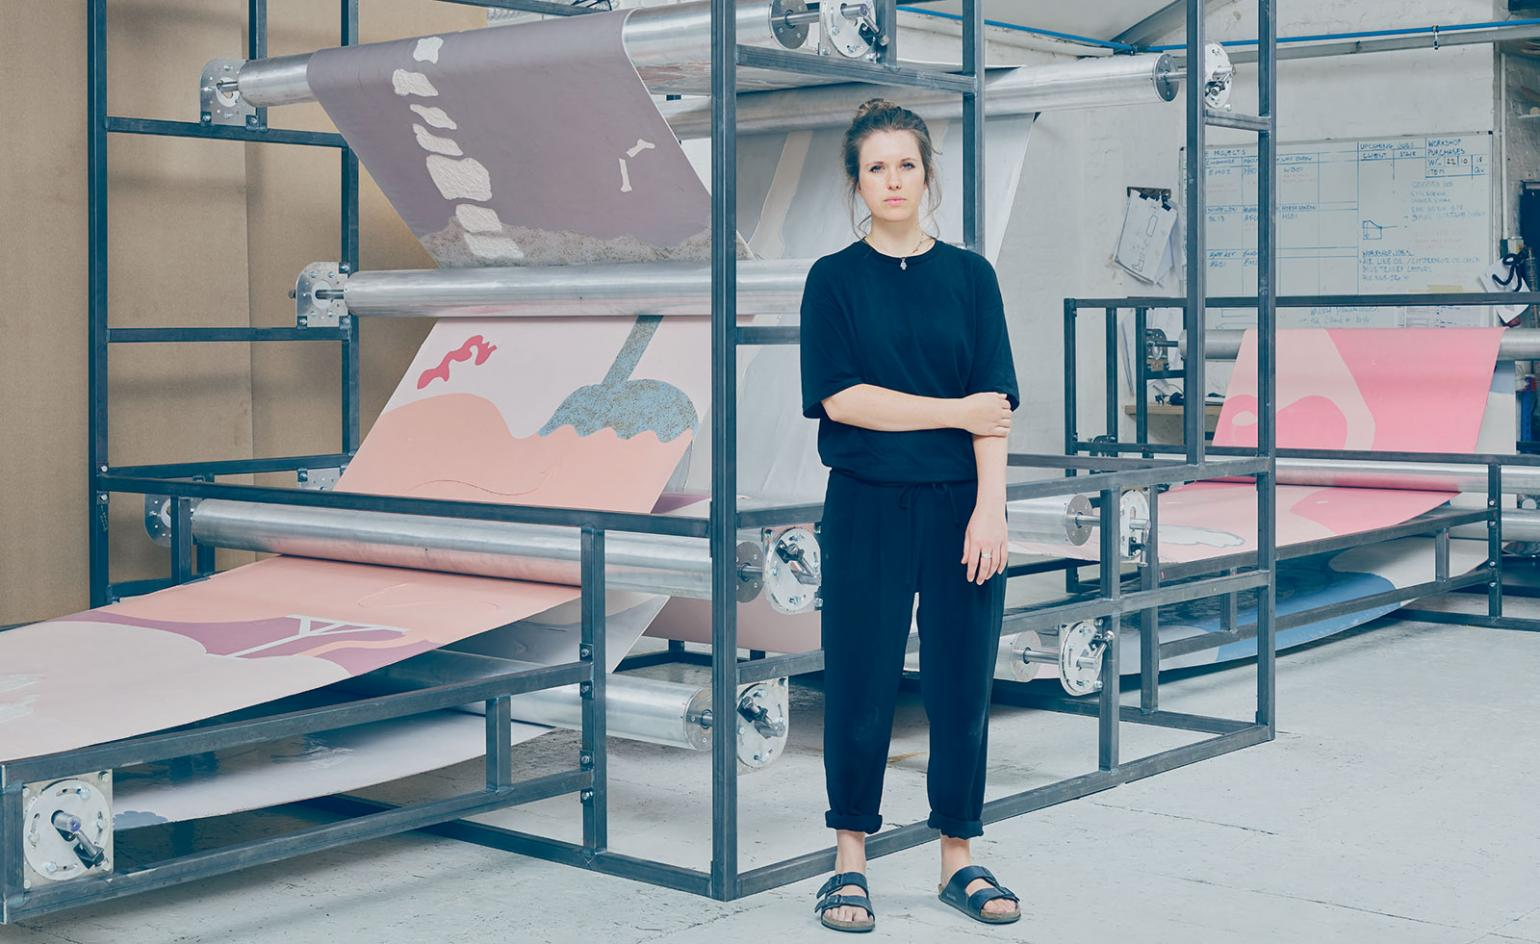 Junk rocker: artist Holly Hendry's new solo show conveys her taste for waste